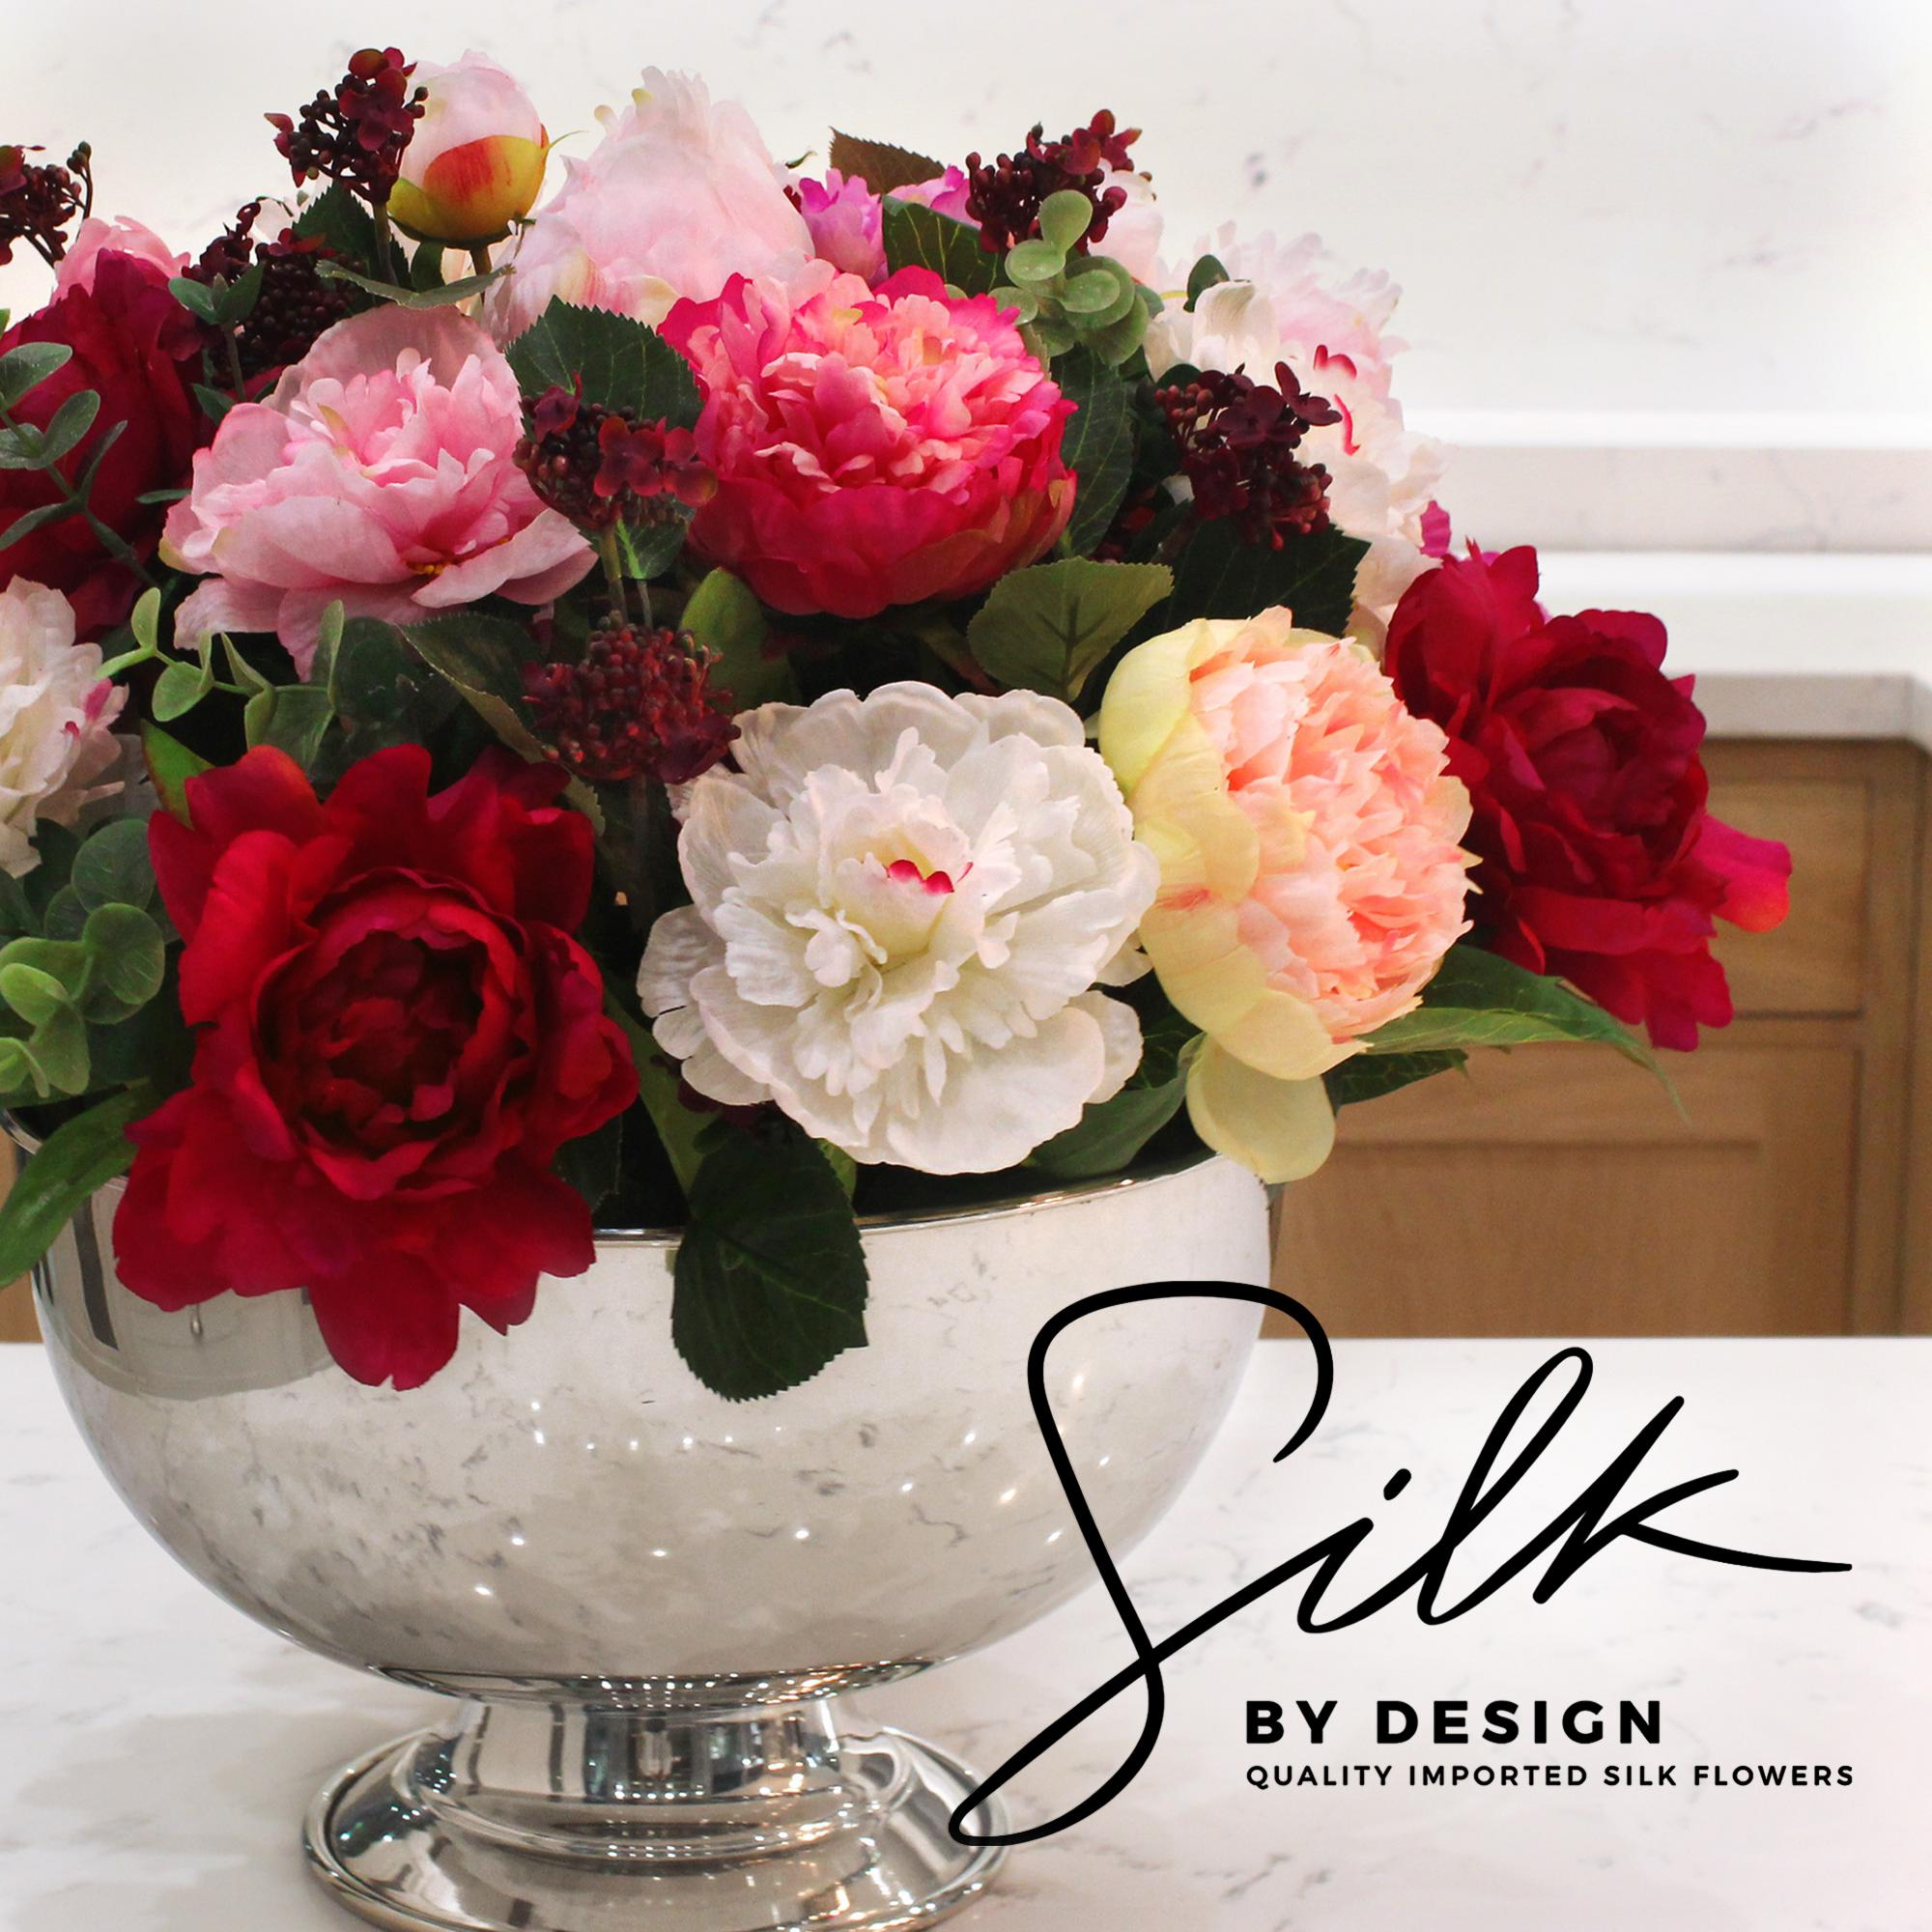 Silk by Design (PTY) Ltd